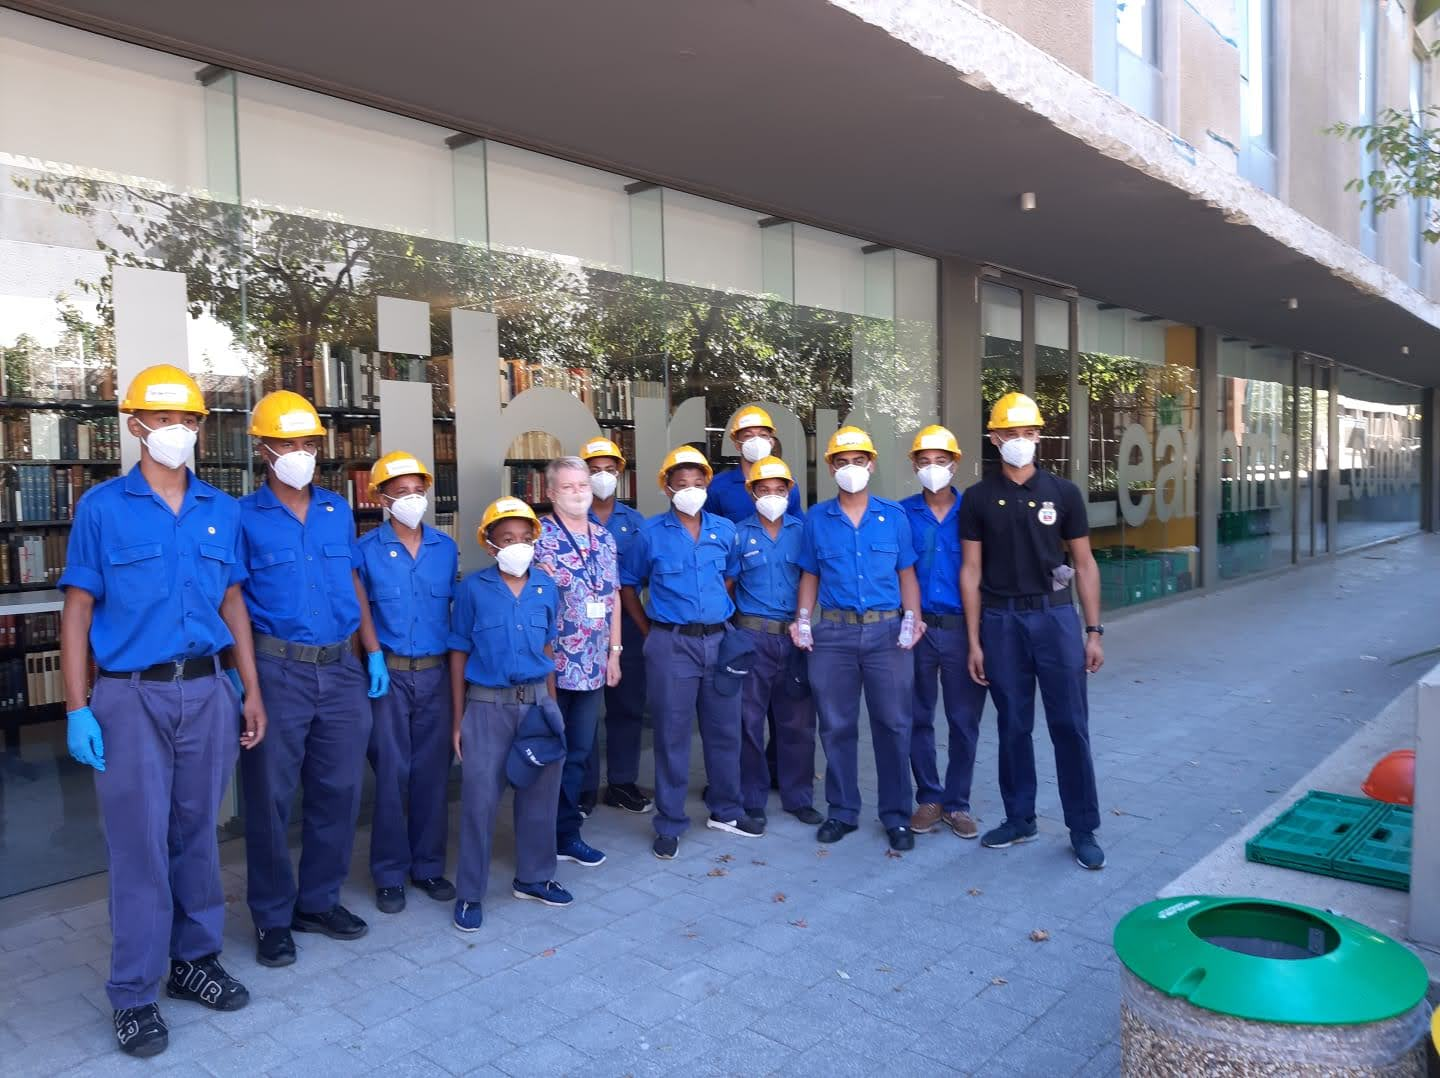 Bev Angus with the Sea Cadets outside the Library Learning Lounge.